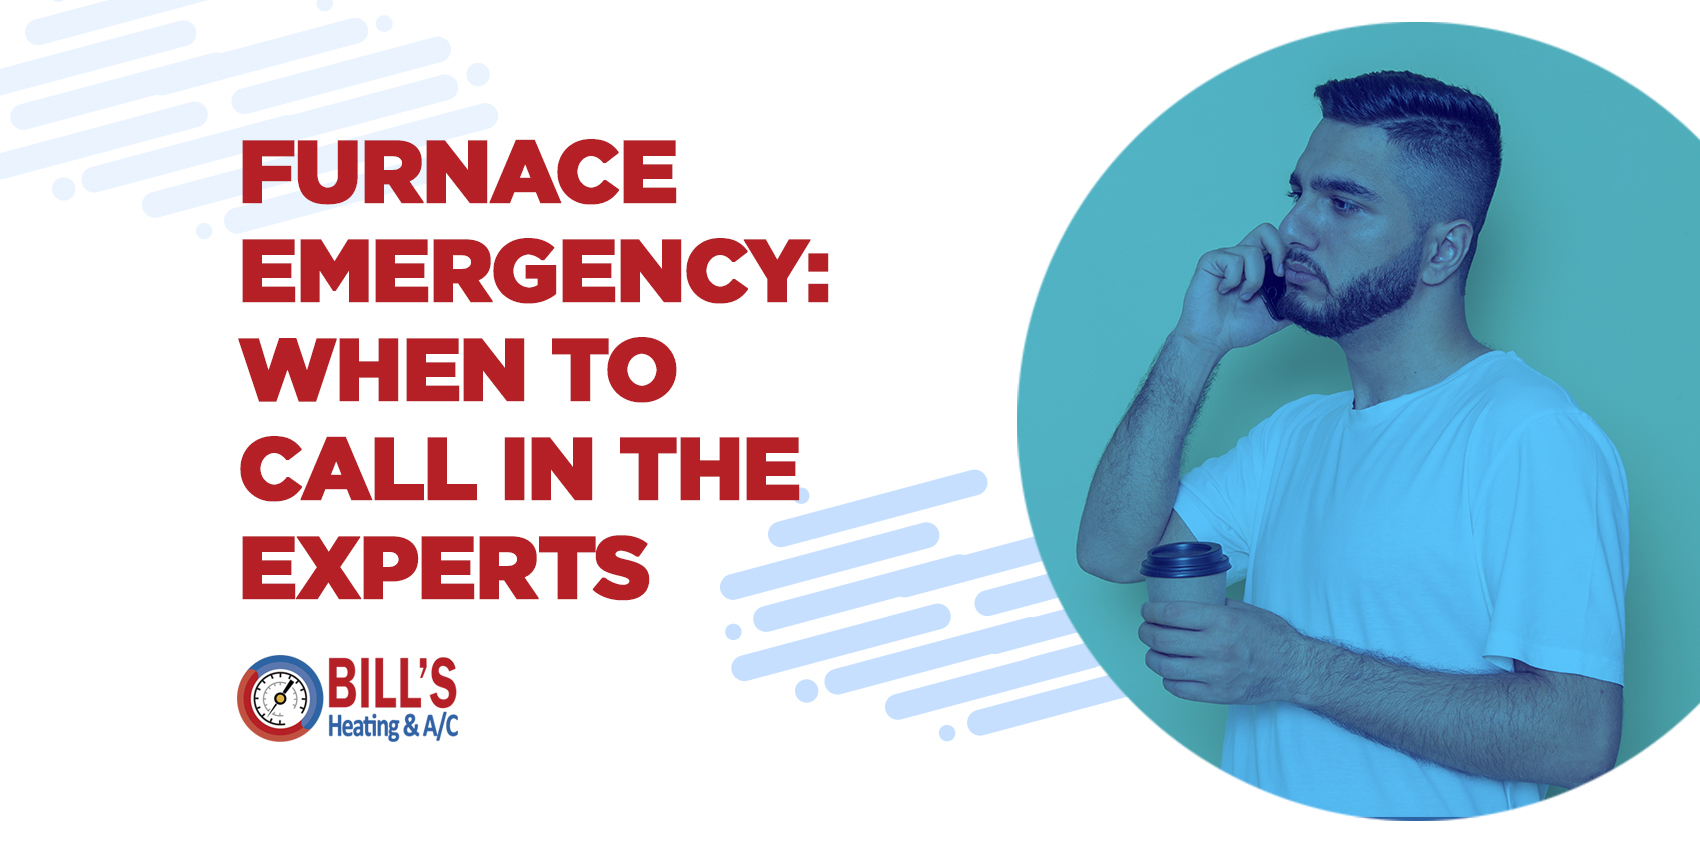 Furnace Emergency: When to Call in the Experts